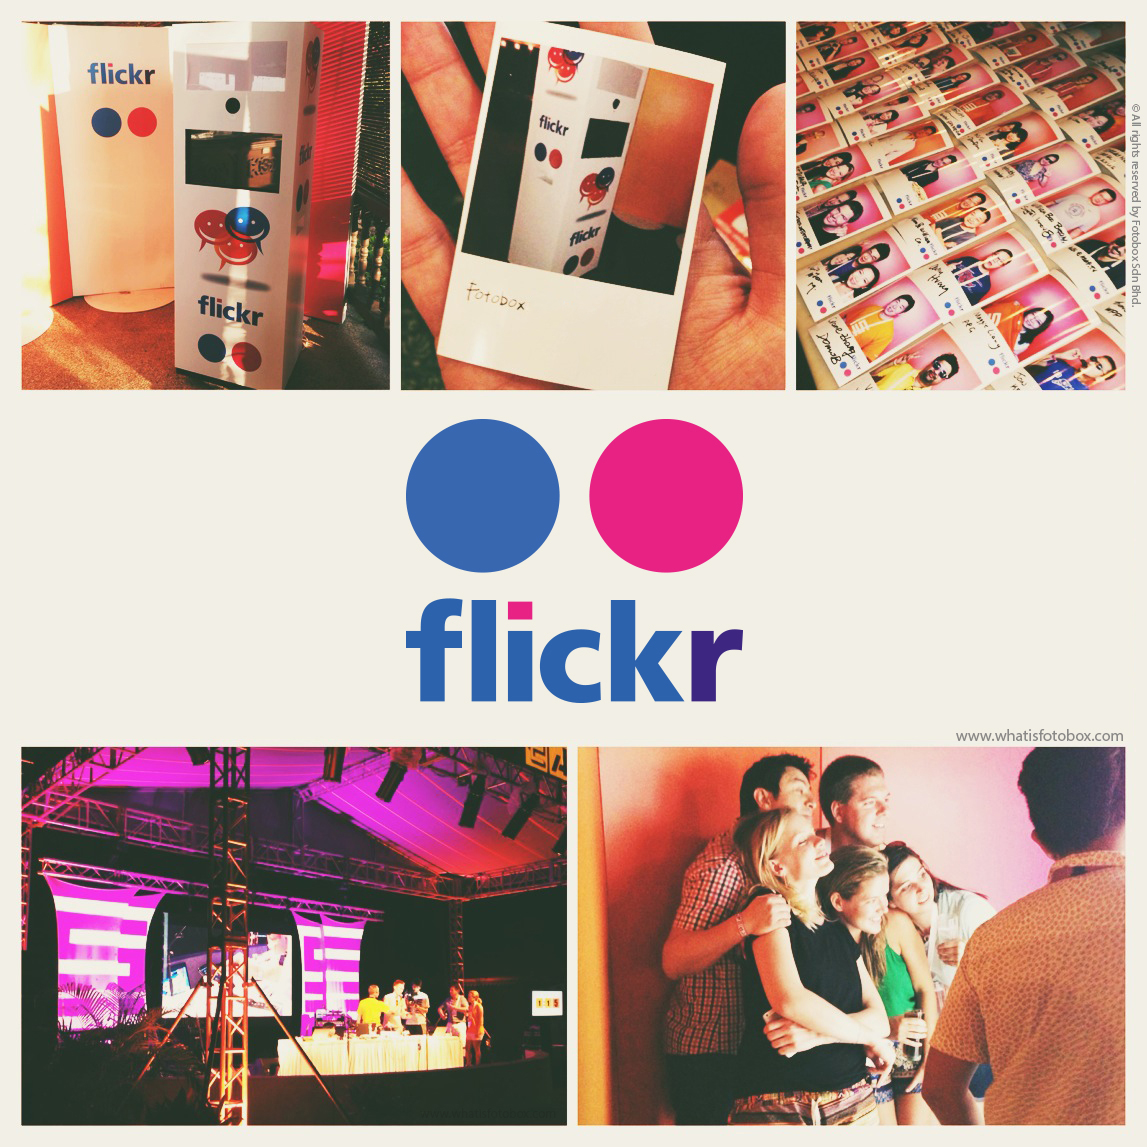 Flickr Fotobox copy.jpg